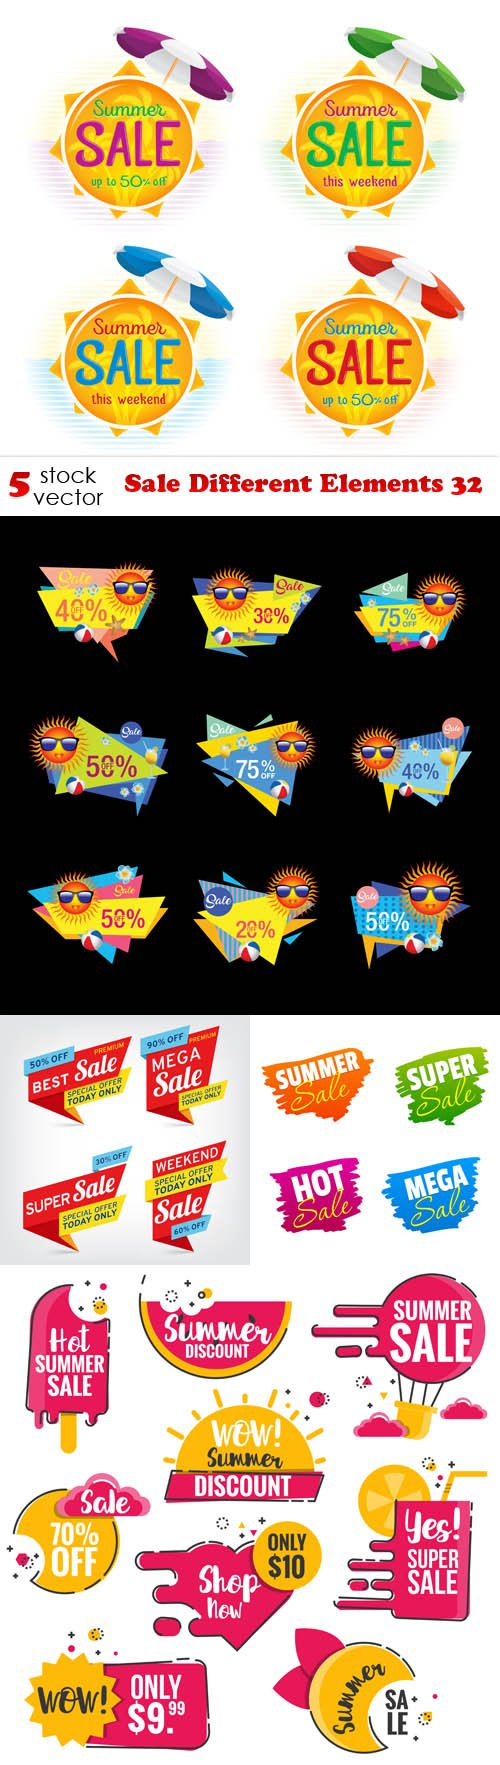 Vectors - Sale Different Elements 32